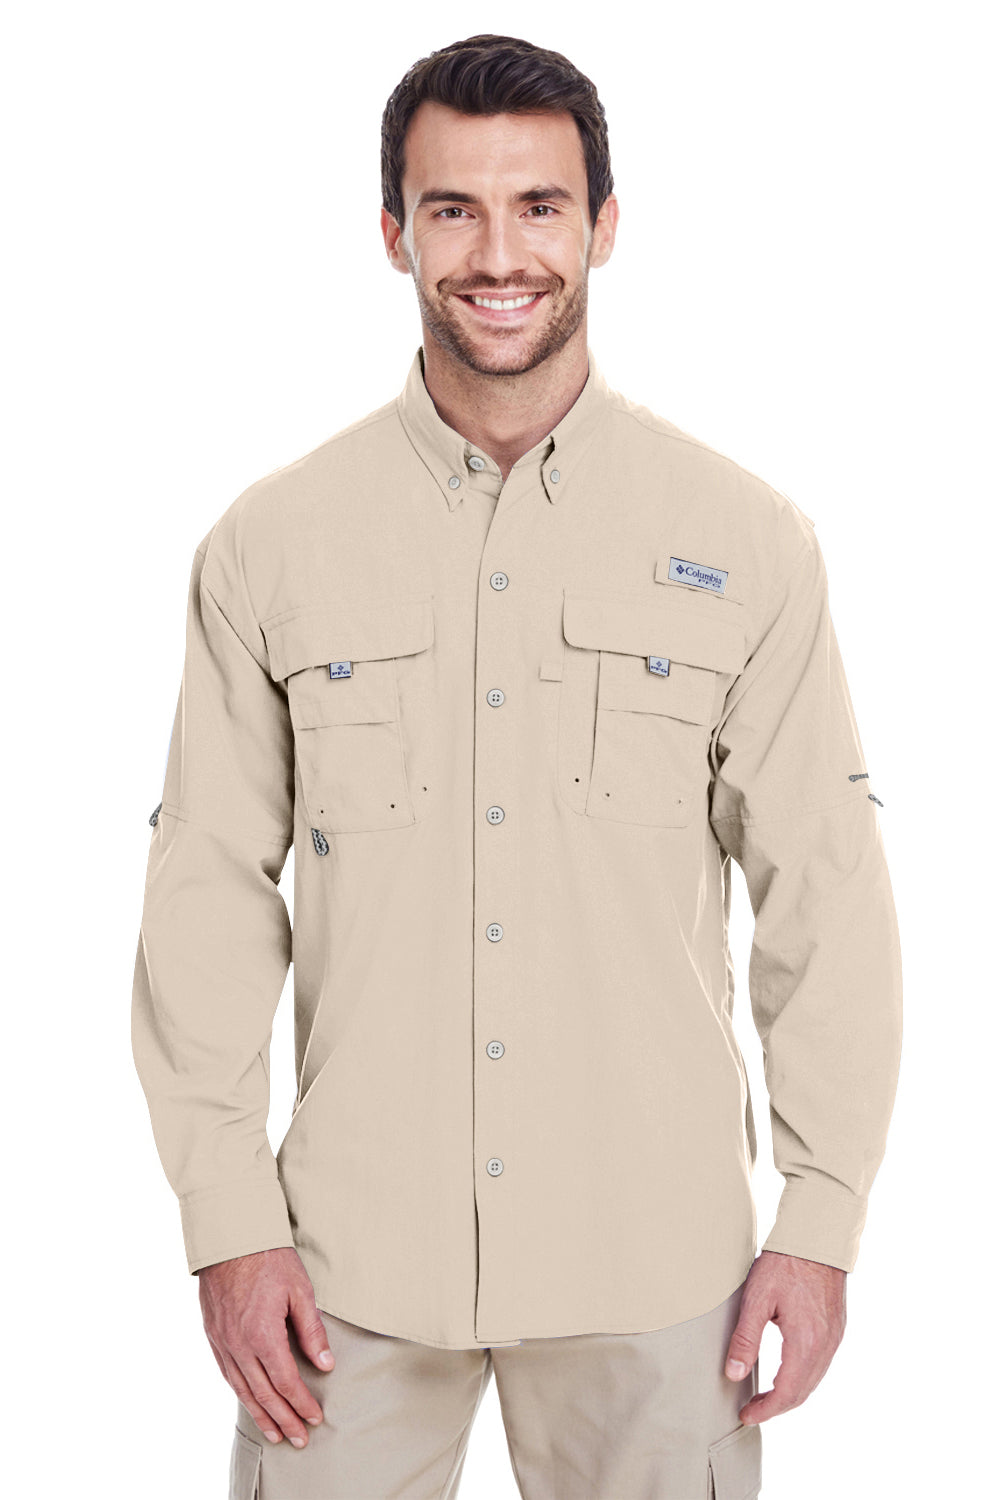 Columbia 7048 Mens Bahama II Moisture Wicking Long Sleeve Button Down Shirt w/ Double Pockets Fossil Brown Front